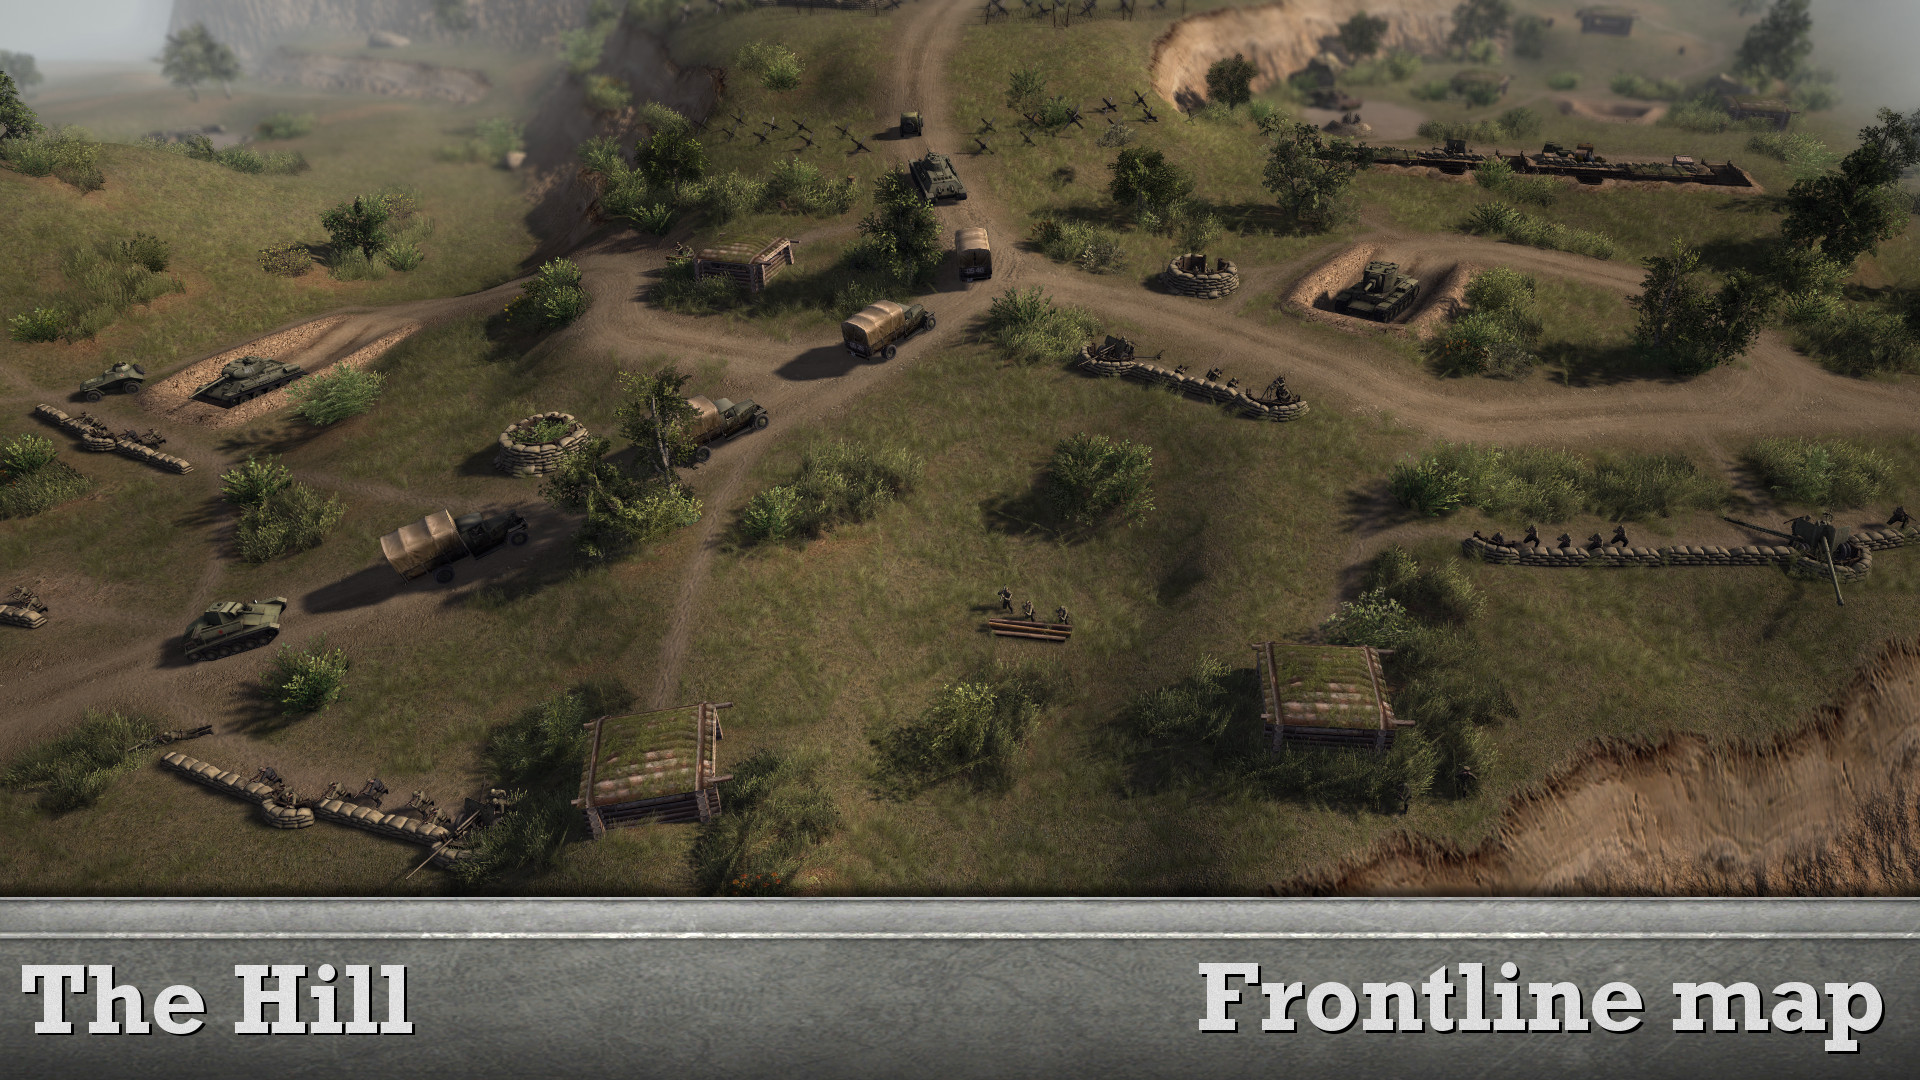 Скачать The Hill - Frontline map - 1x1 (AS2 — 3.260.0) (v09.09.2018) — бесплатно